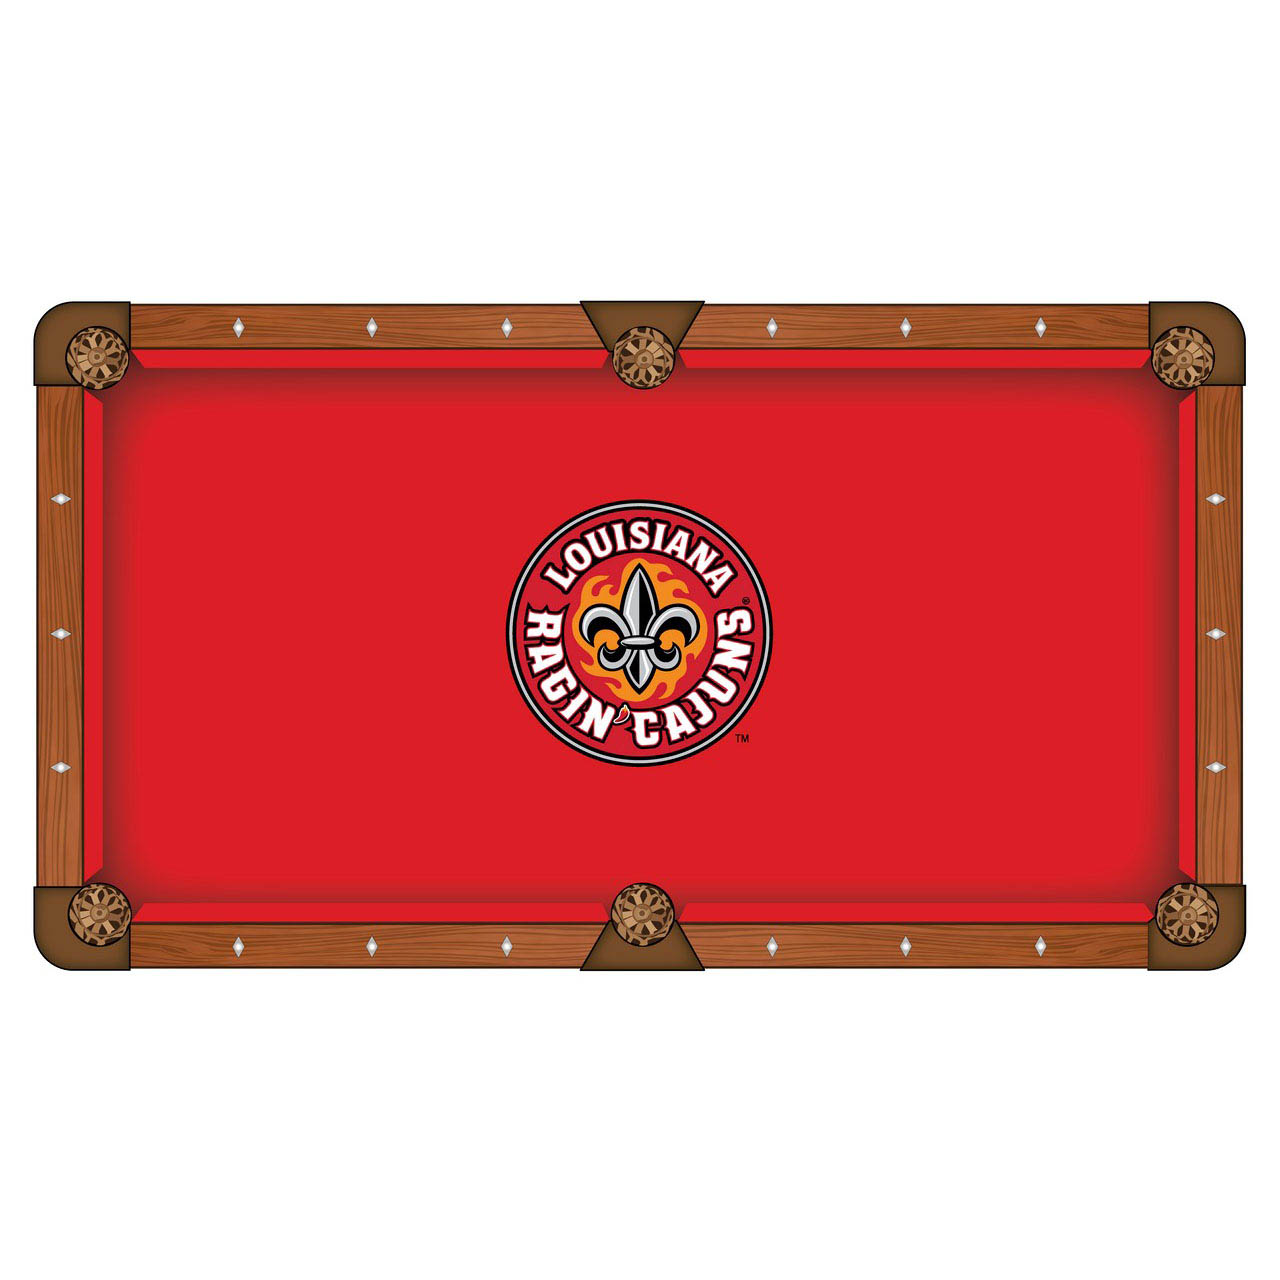 Remarkable University Louisiana At Lafayette Pool Table Cloth Product Photo